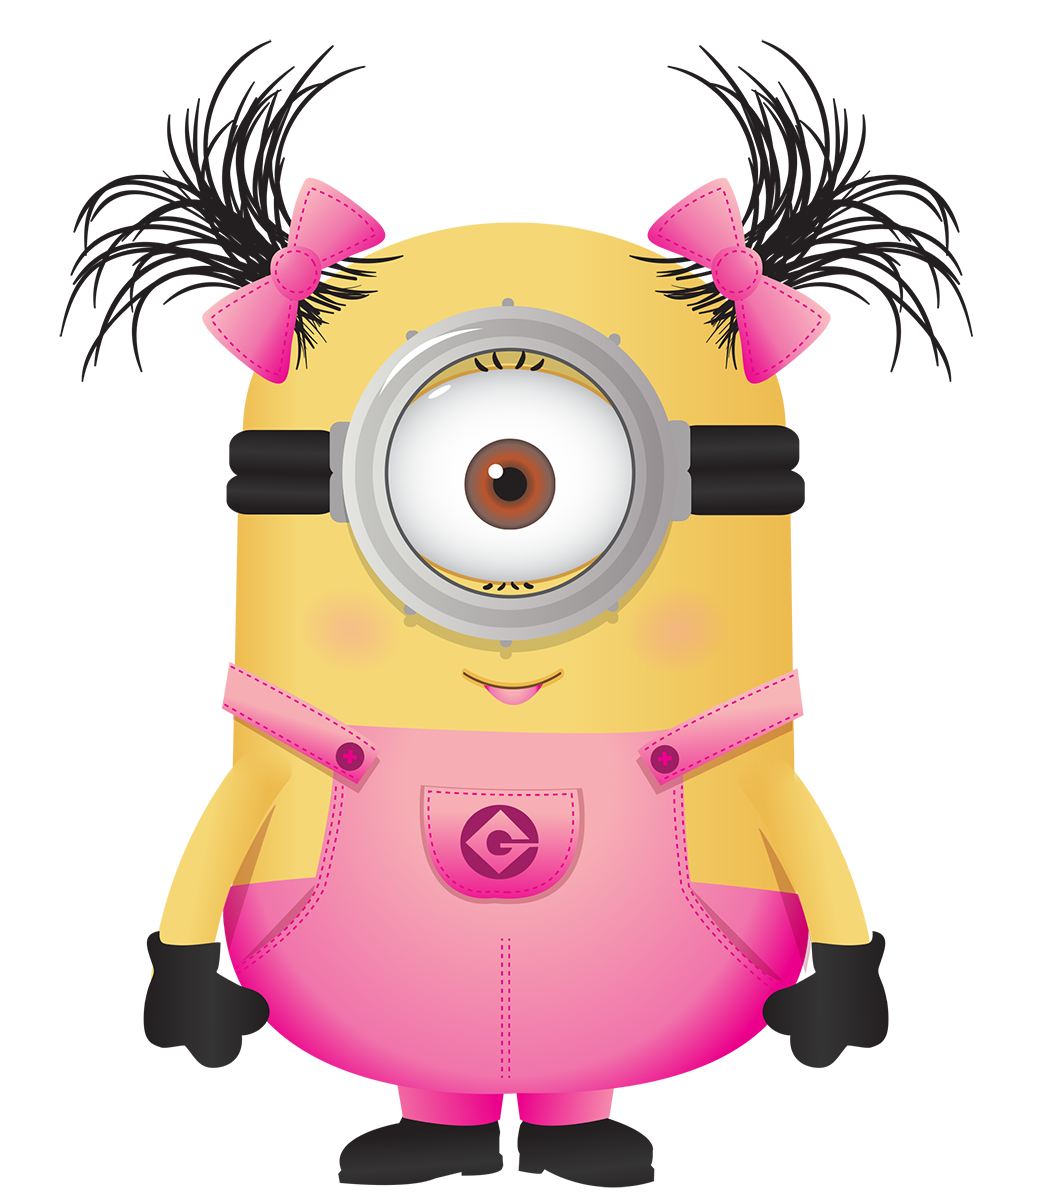 Png images free download. Minions clipart mouth